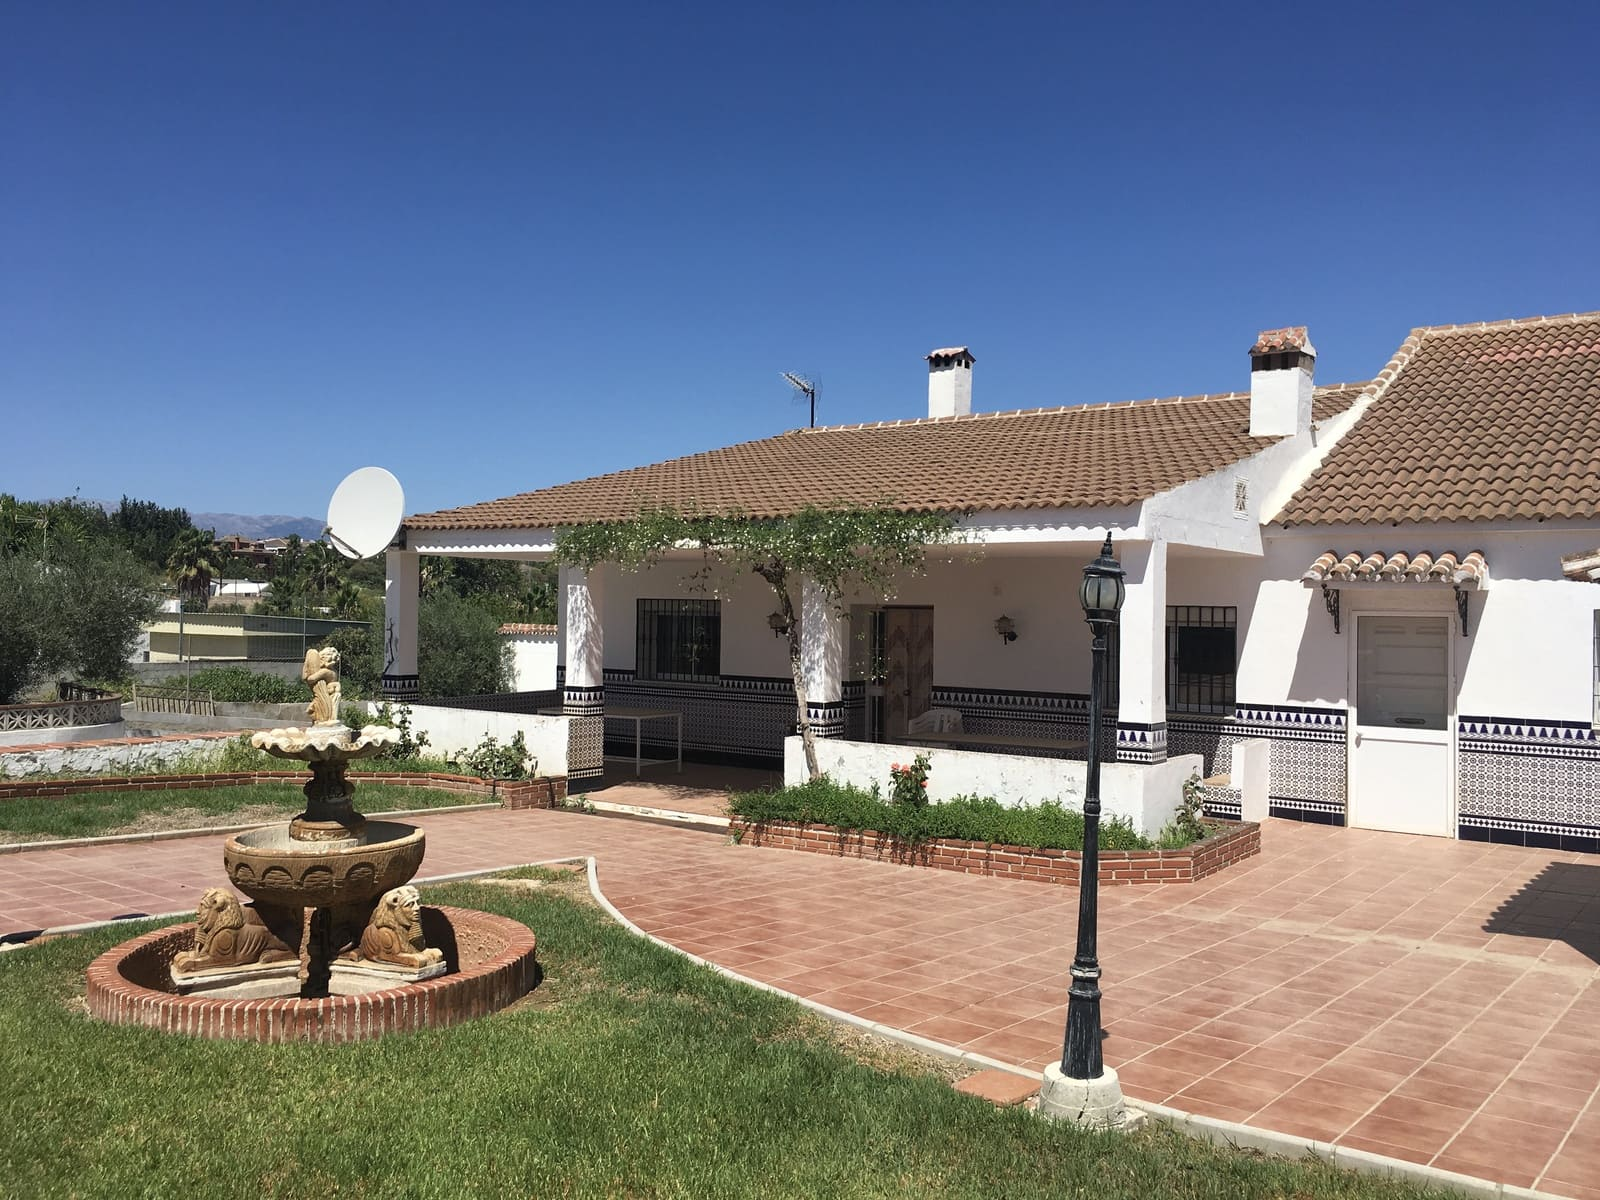 Finca/Country House for sale in Alhaurin el Grande - € 750,000 (Ref: 6333872)